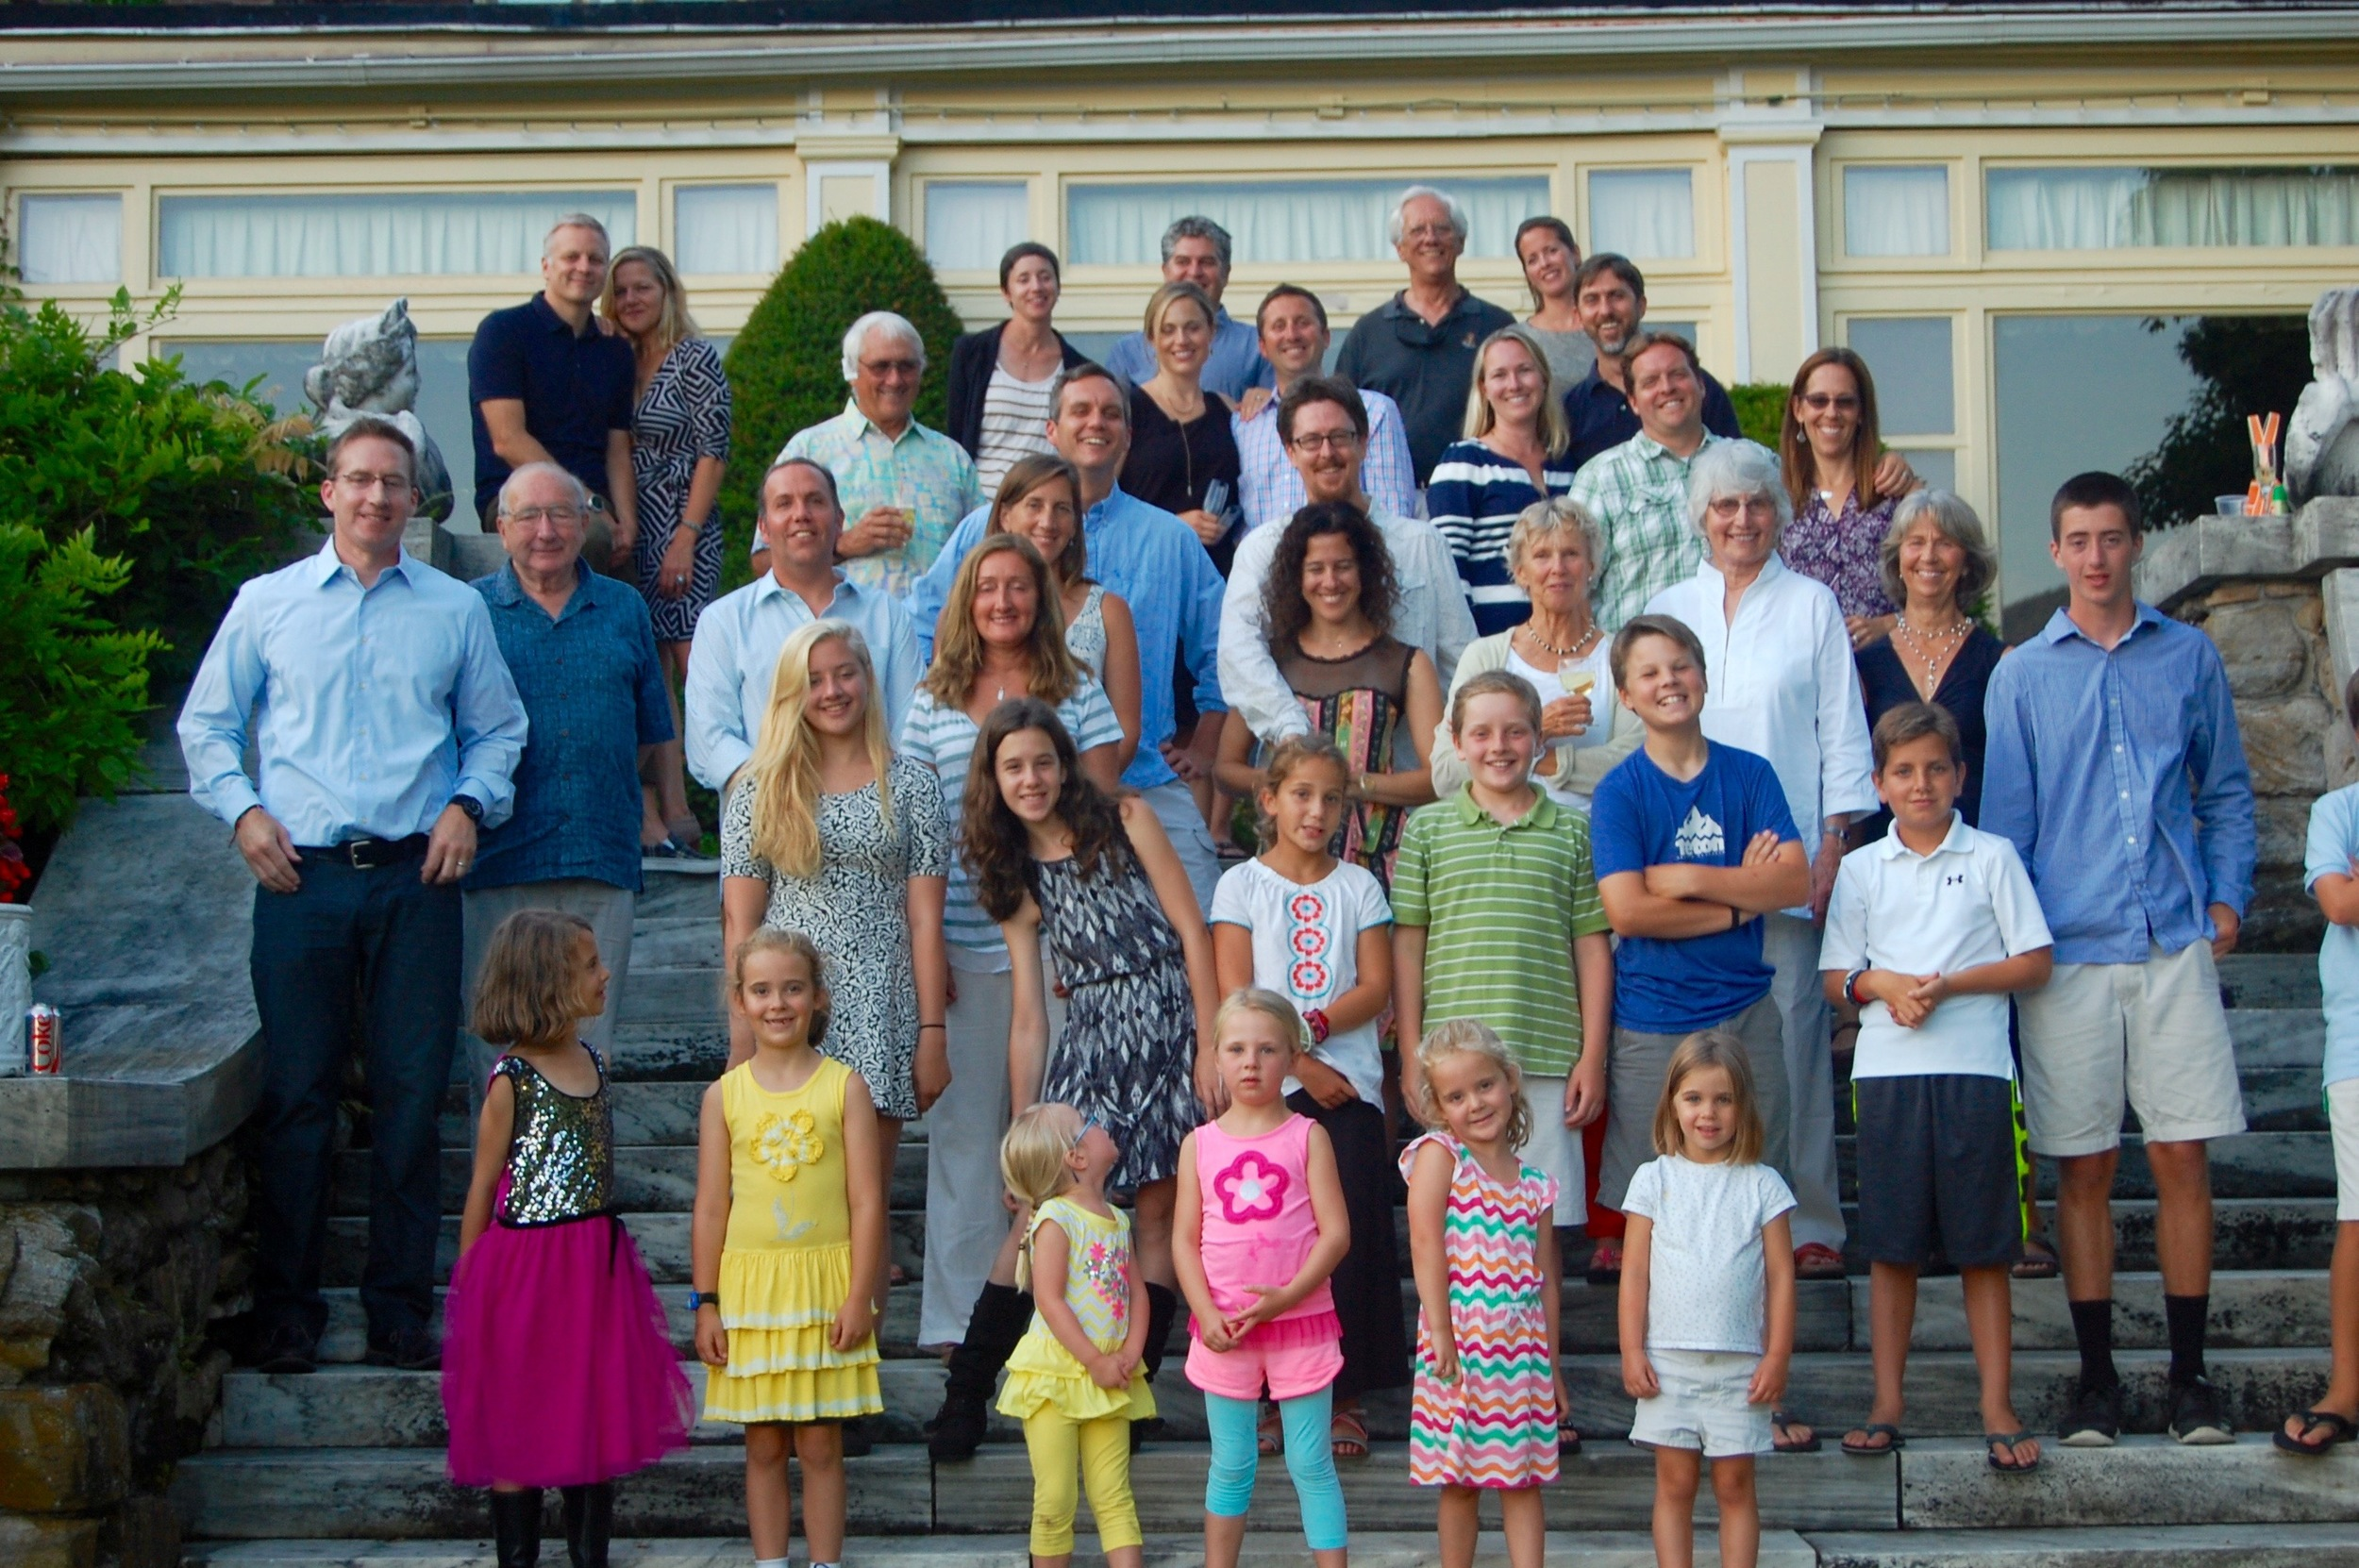 50 friends for 50 years